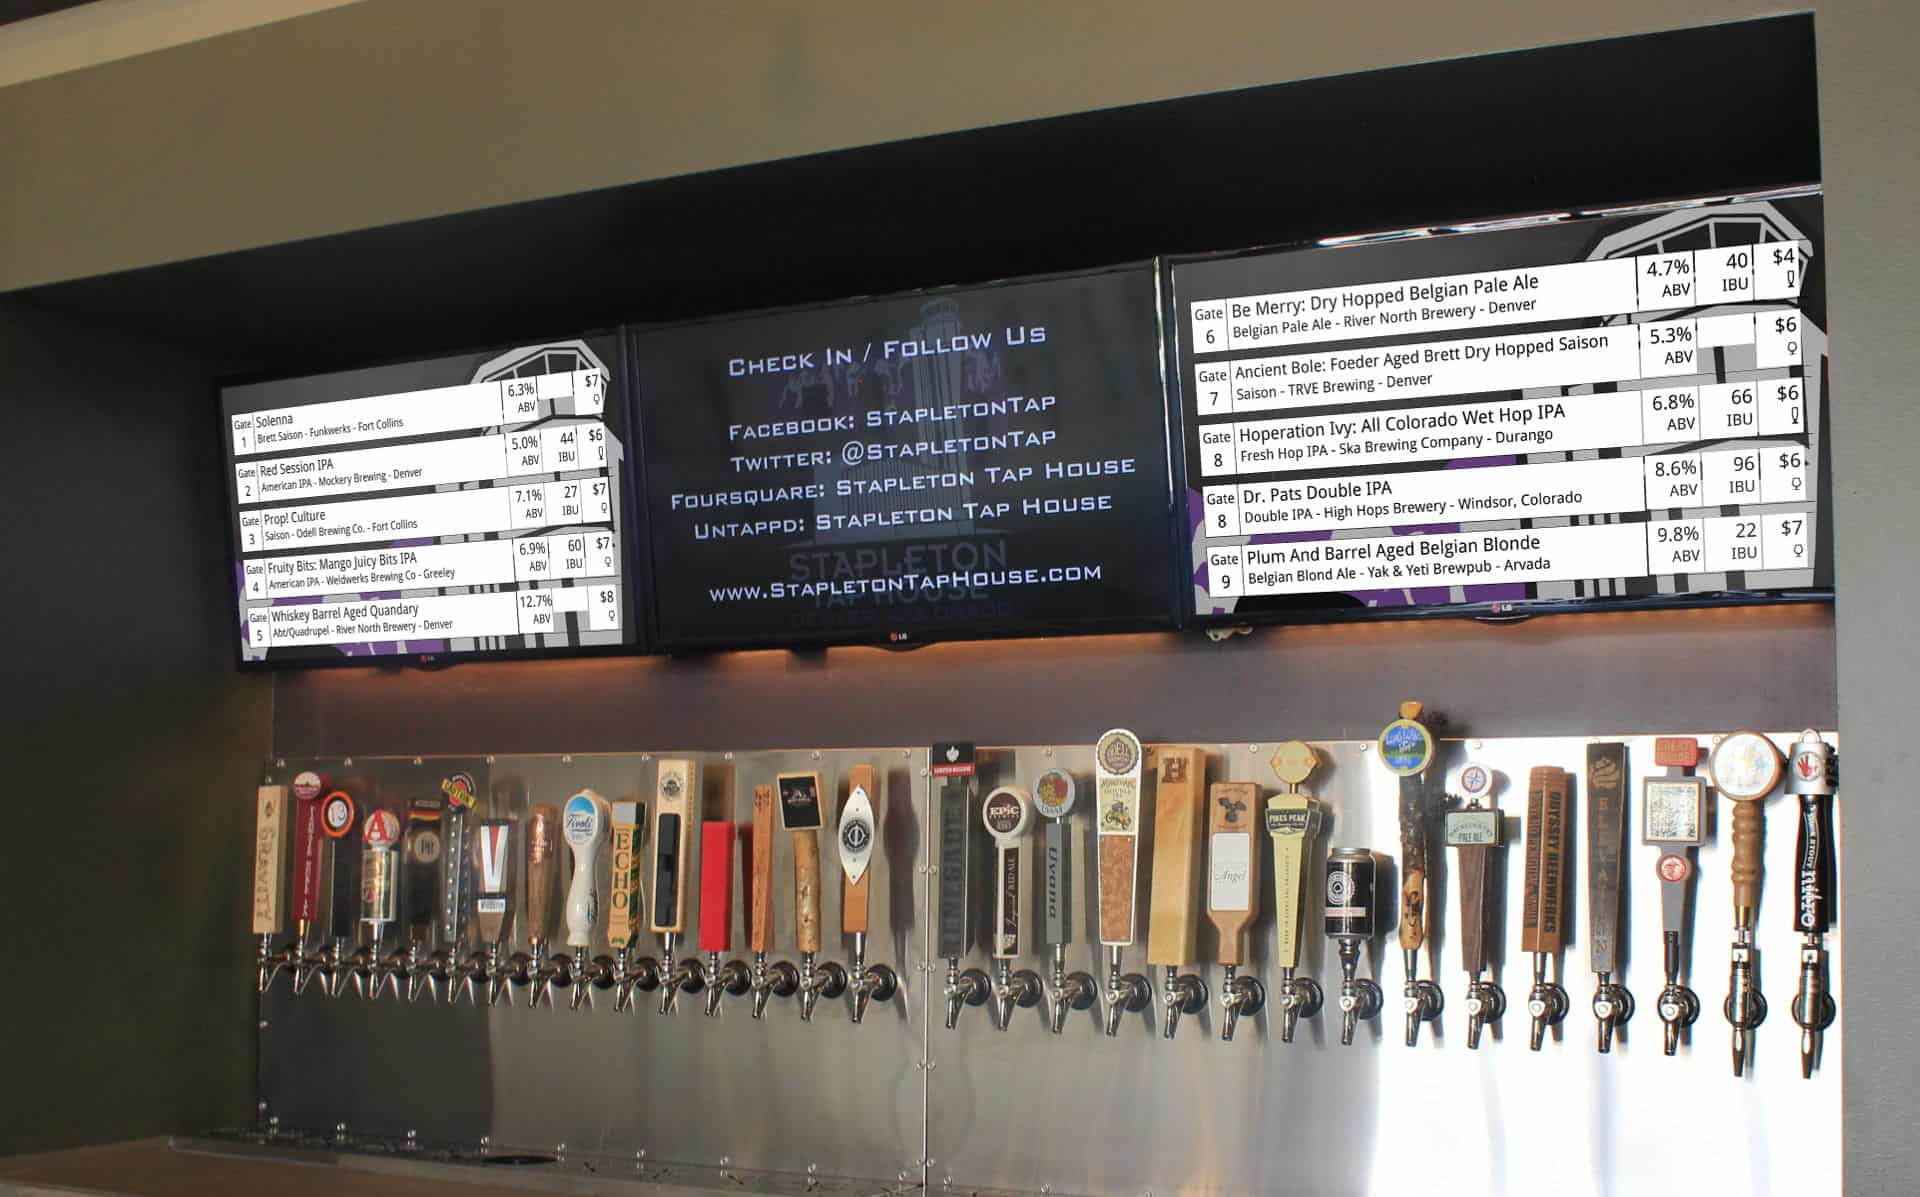 Stapleton Tap House Digital Menu